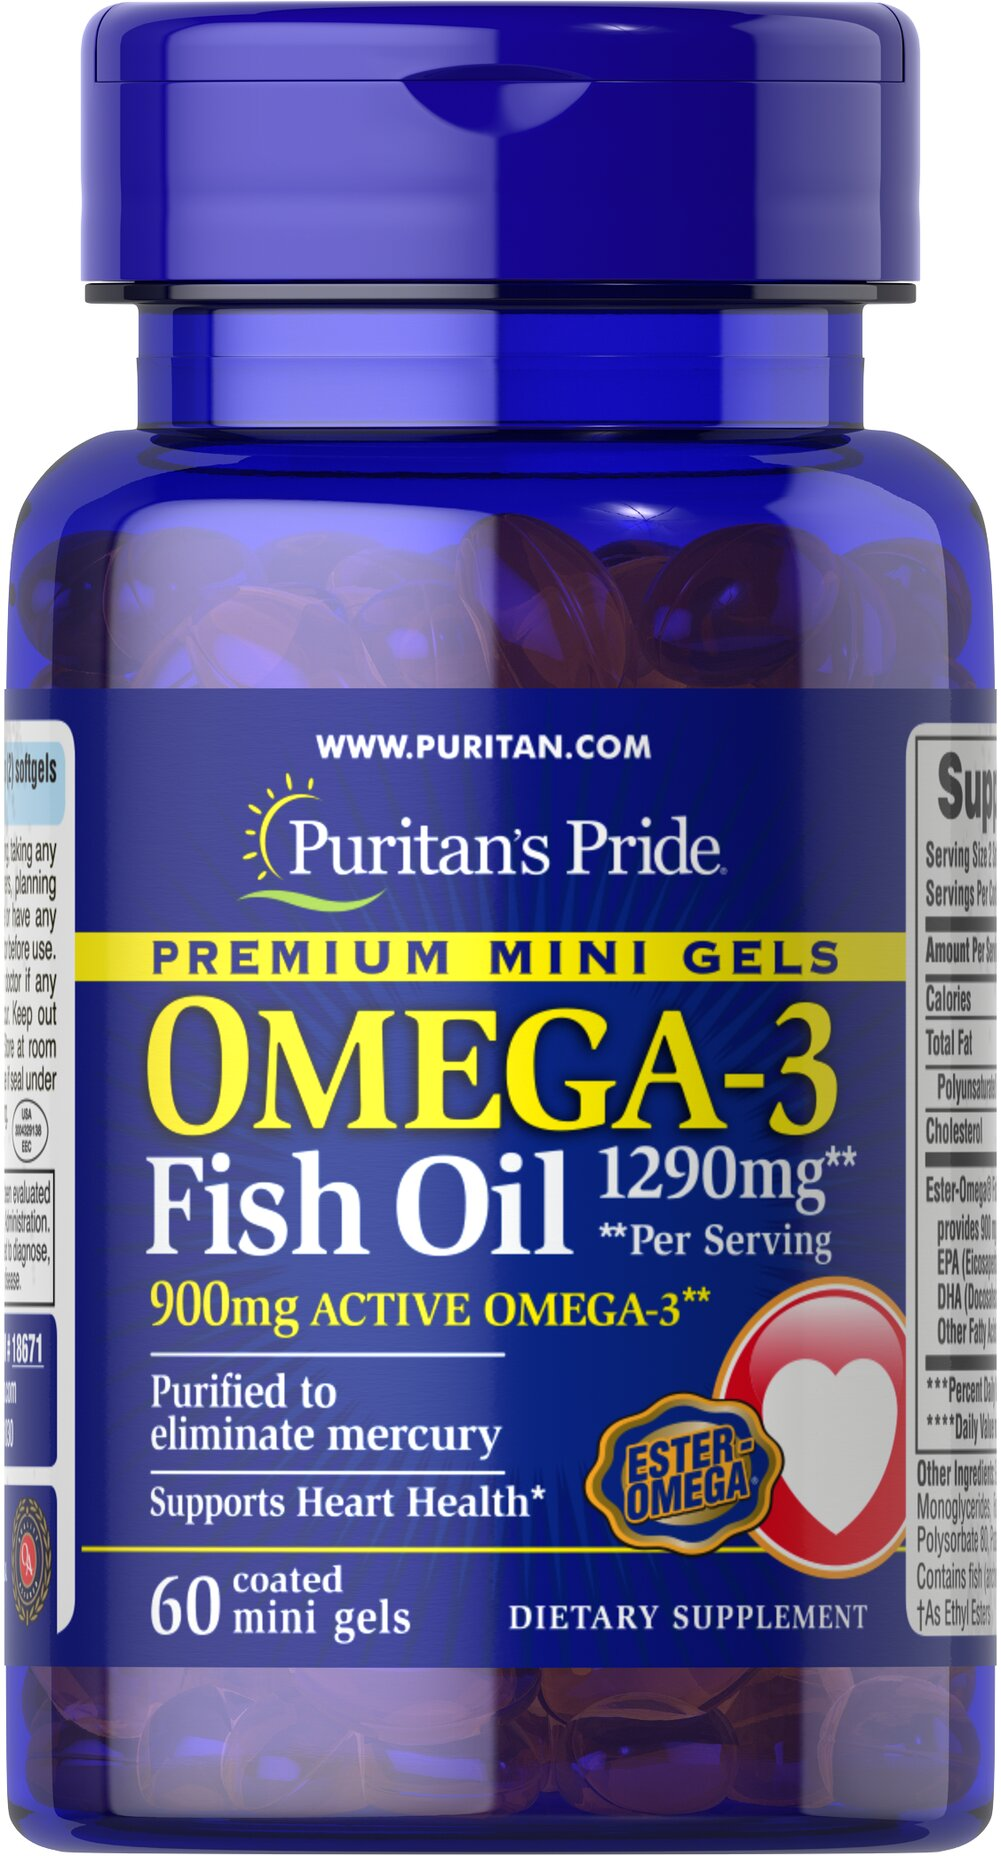 Fish Oil Mini Gels 645 mg <p><b>Purified to Eliminate Mercury</b></p><p>Enhanced with 900 mg of active Omega-3 per serving</p>    <p>Mercury free mini gels are coated to prevent fishy aftertaste</p> 60 Coated Softgels 645 mg $21.99